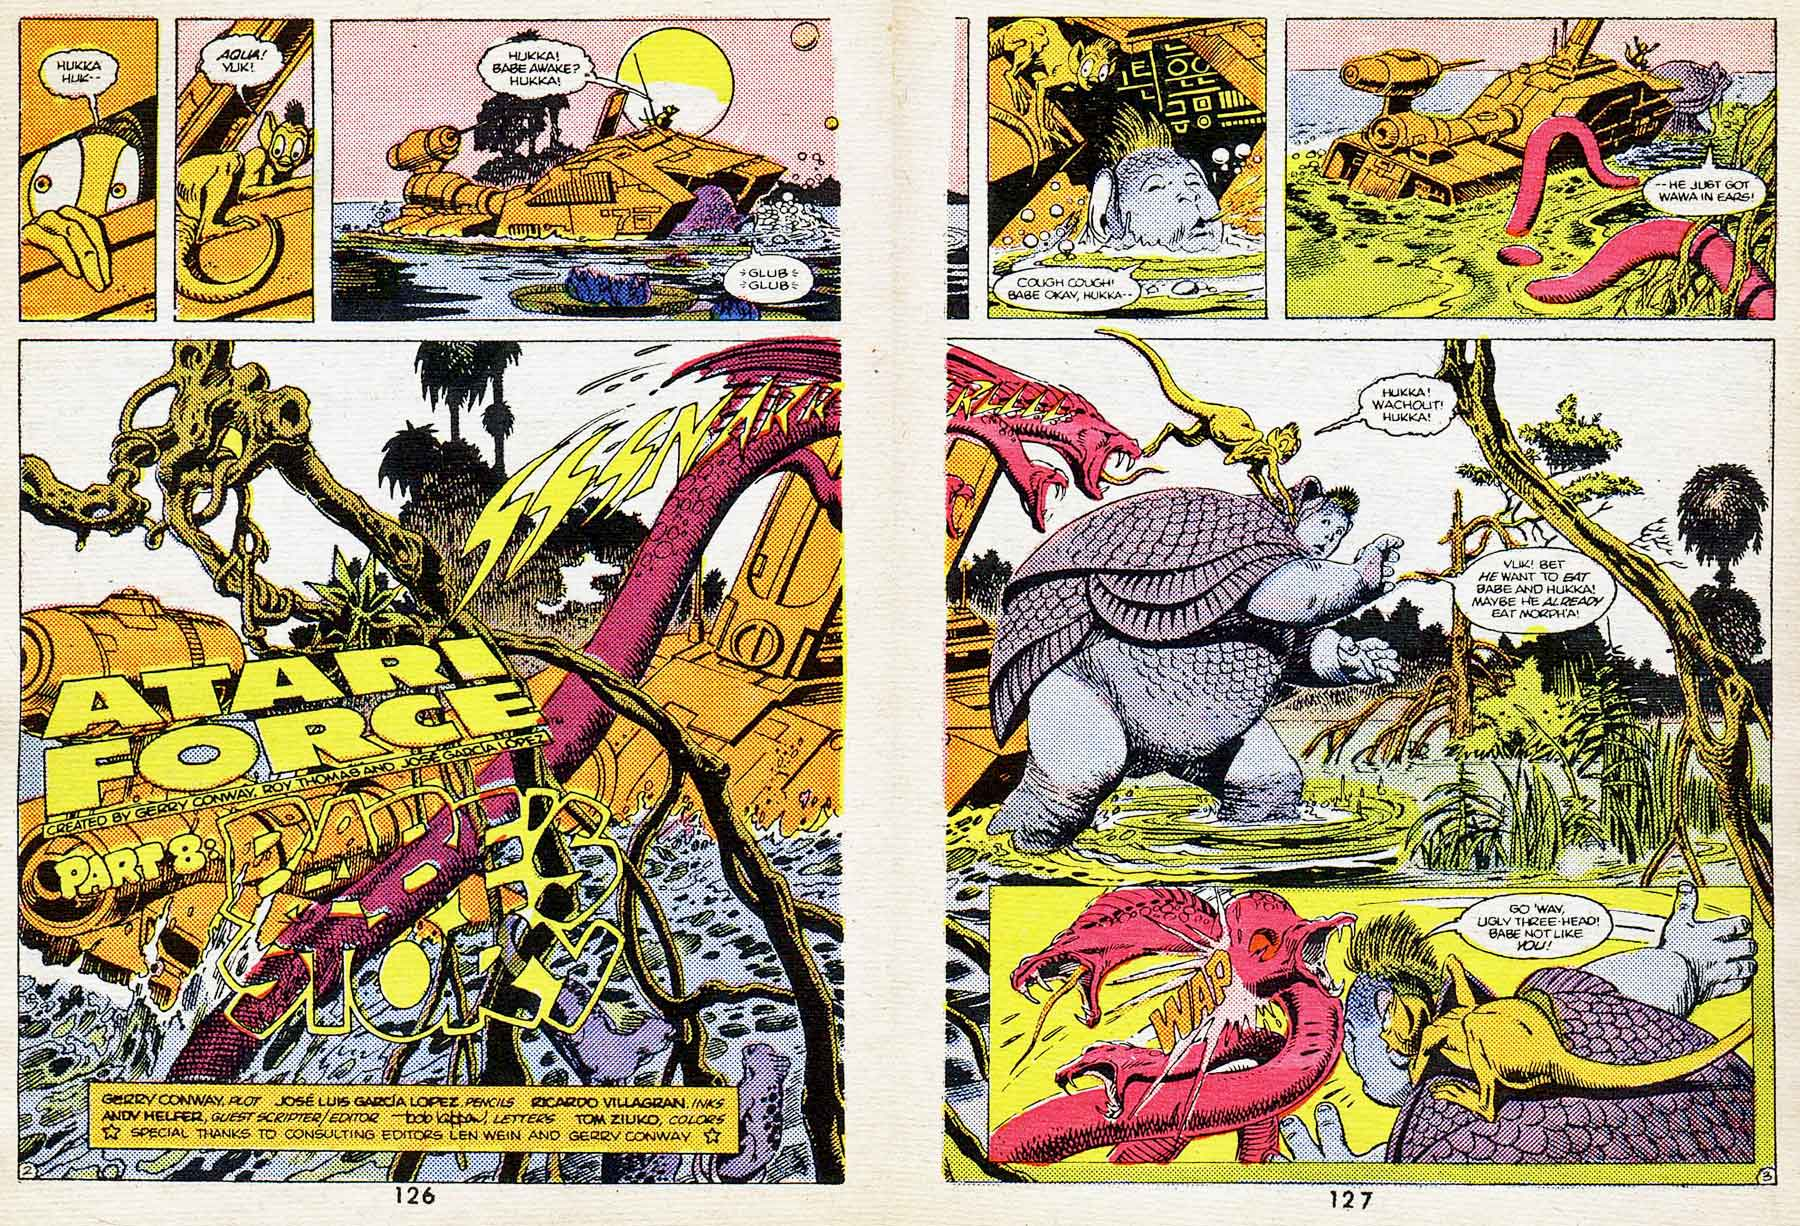 "Best of DC Blue Ribbon Digest #61: Year's Best Comic Stories 1984 - Atari Force: ""Babe's Story"" by Gerry Conway, Andrew Helfer, Jose Luis Garcia-Lopez and Ricardo Villagran"